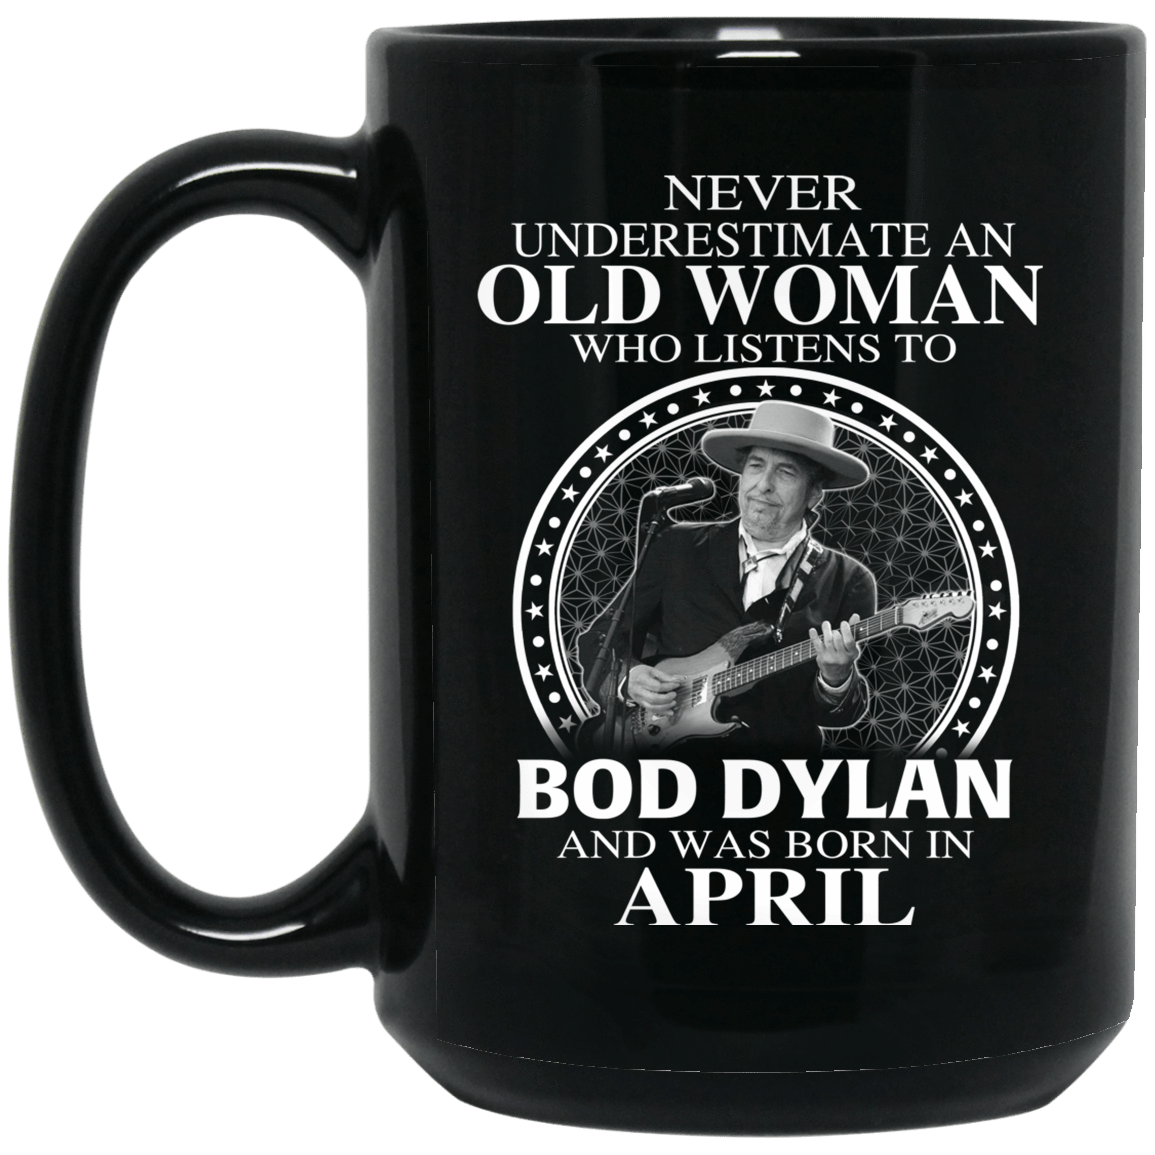 An Old Woman Who Listens To Bob Dylan And Was Born In April Mug 1066-10182-76154151-49311 - Tee Ript